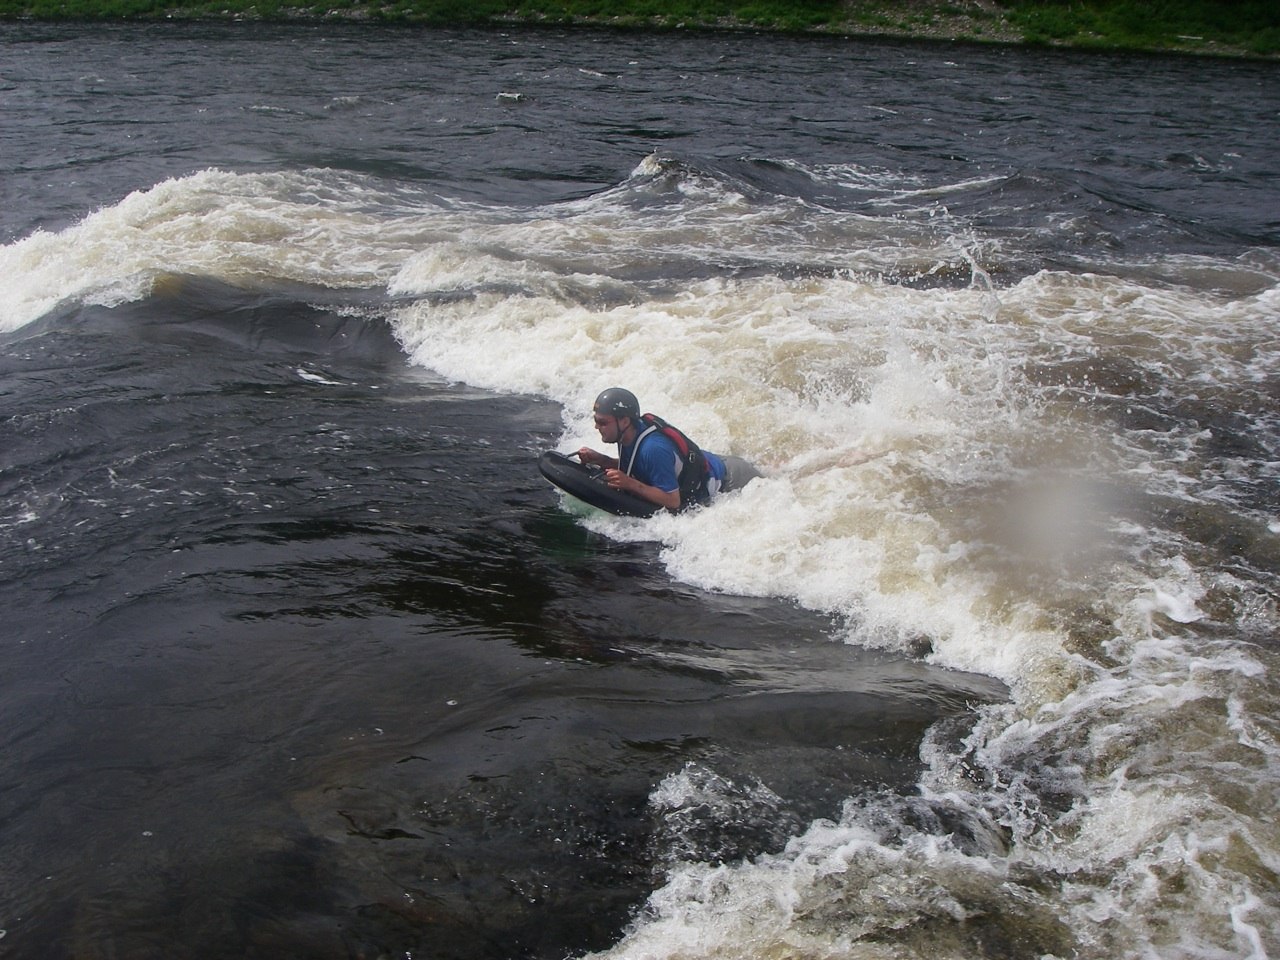 Some People Got Out After Lunch And Body Surfed In The Rapids.